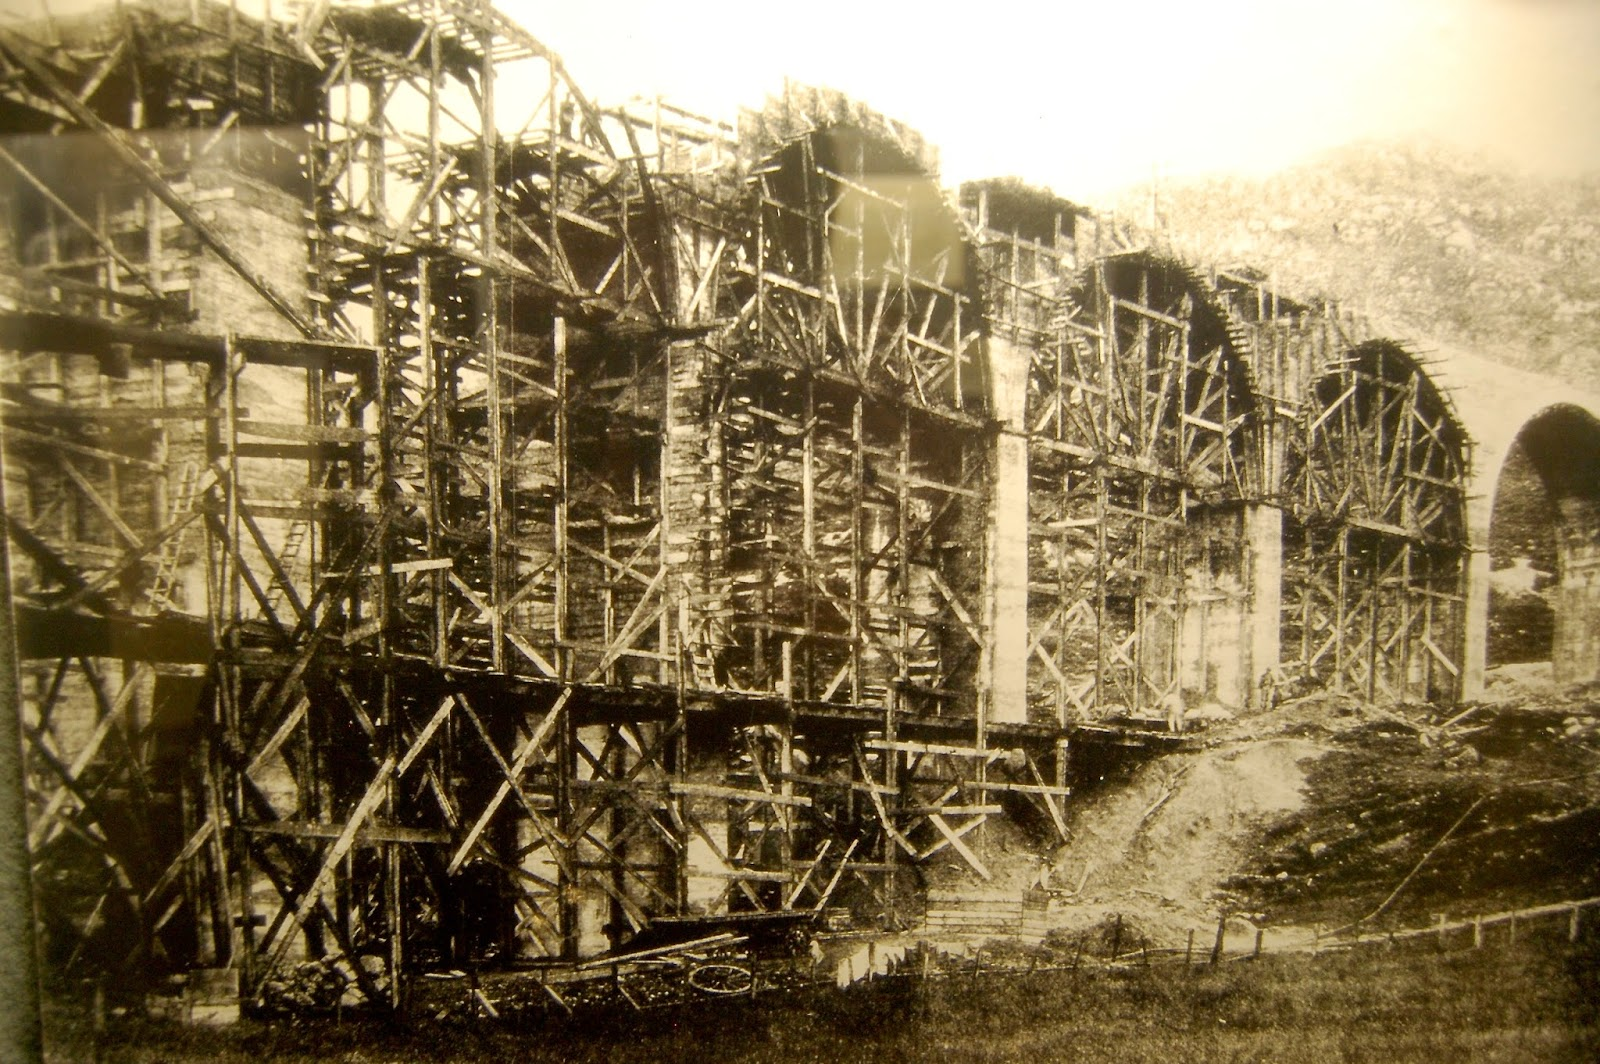 ion of the Glenfinnan Viaduct between 1897 and 1898